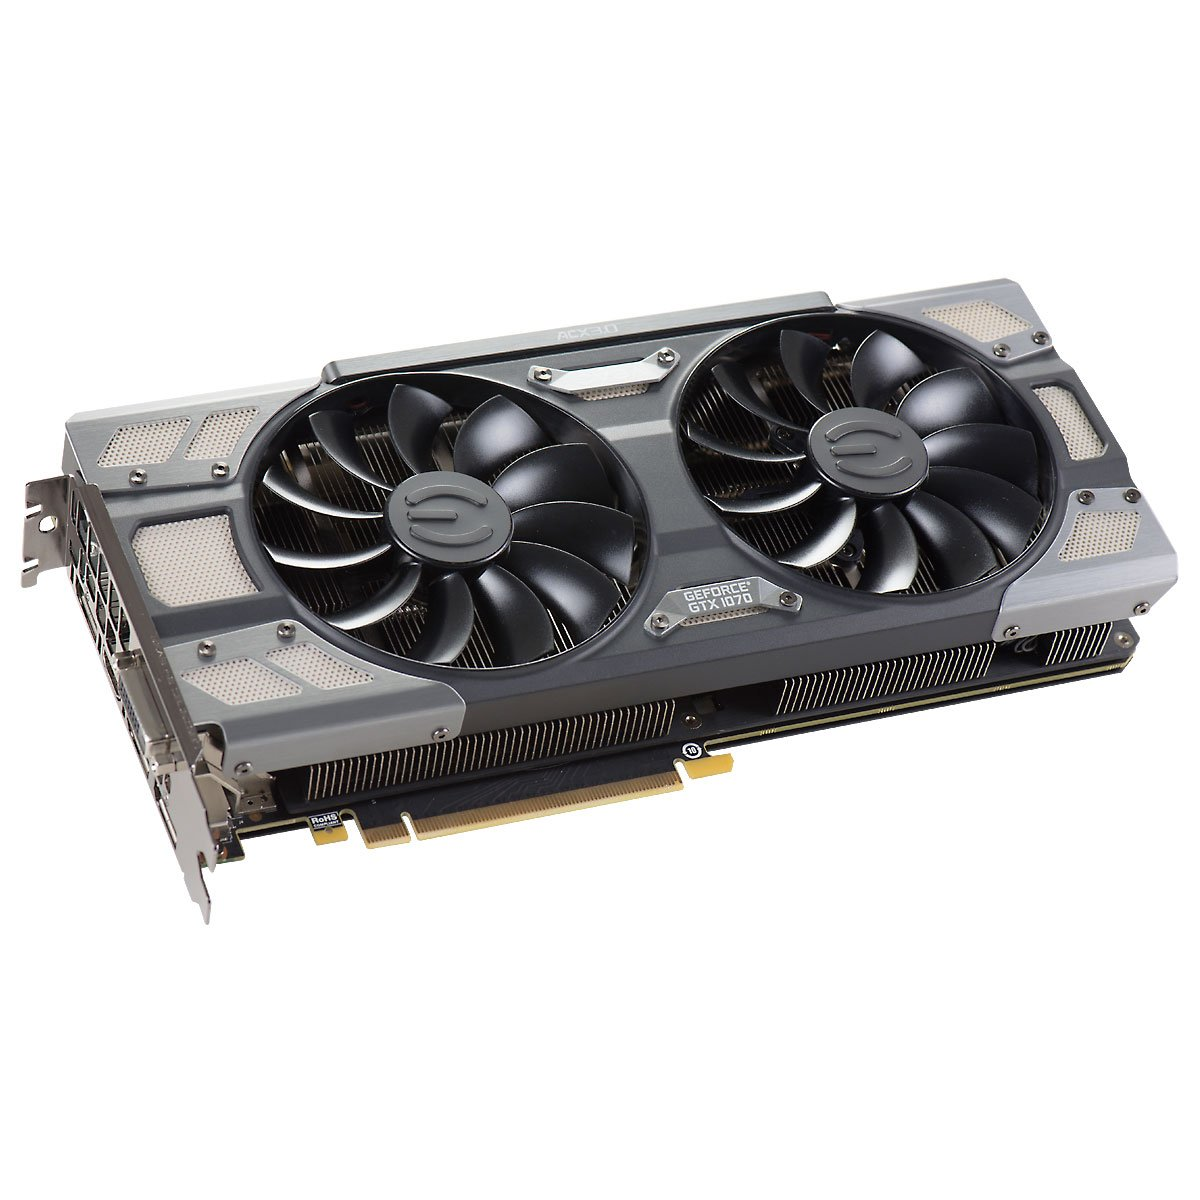 EVGA GeForce GTX 1070 FTW GAMING ACX 3.0, 8GB GDDR5, RGB LED, 10CM FAN, 10 Power Phases, Double BIOS, DX12 OSD Support (PXOC) Graphics Card 08G-P4-6276-KR by EVGA (Image #4)